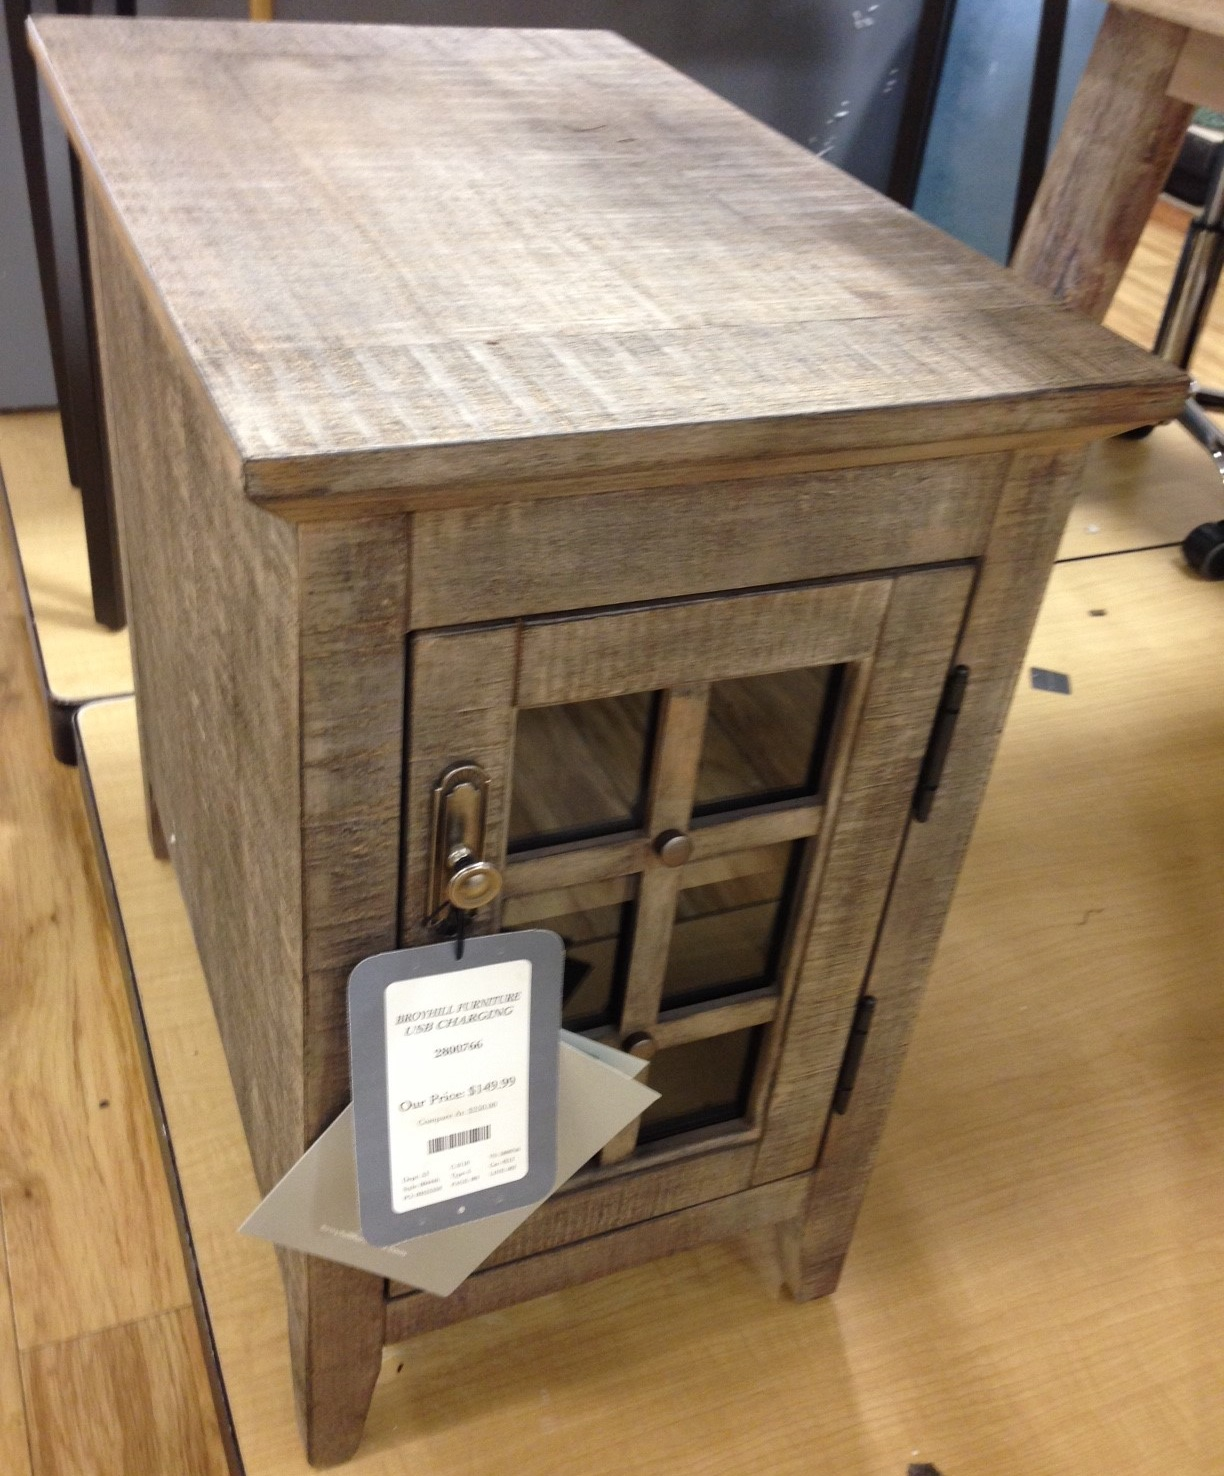 Broyhill Chairside Table in Weathered Gray found in TJ Maxx